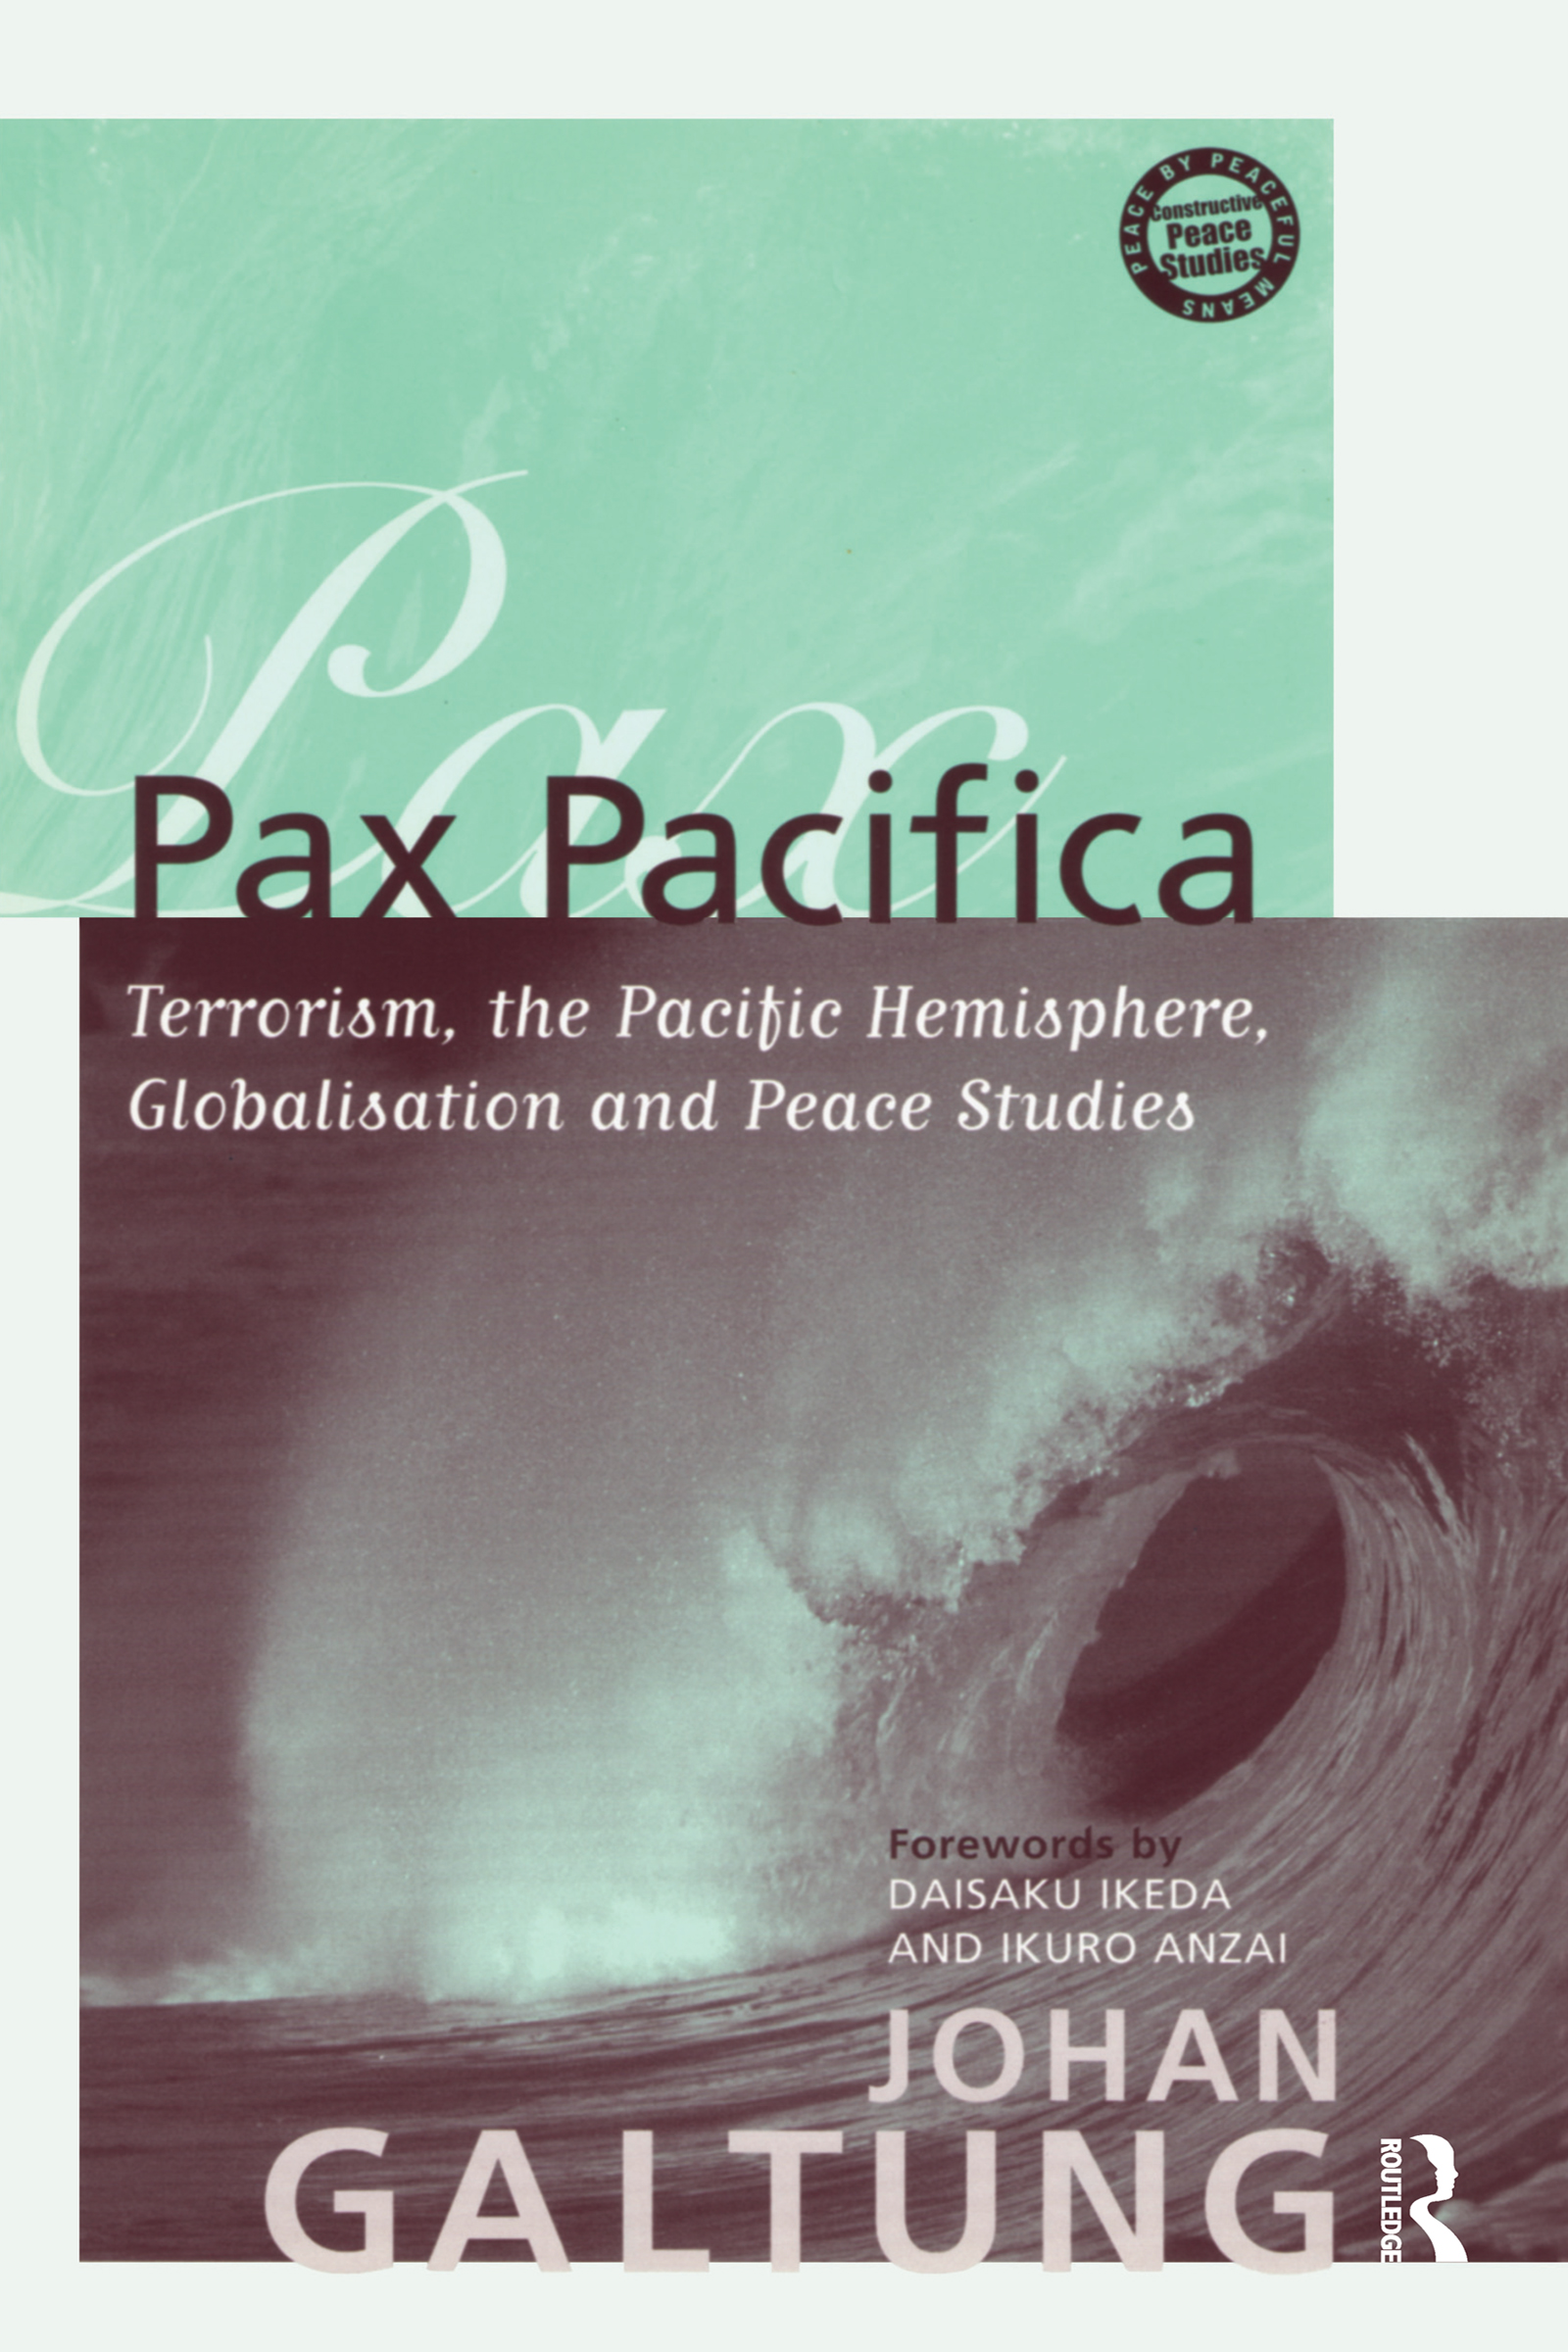 Towards a Pax Pacifica